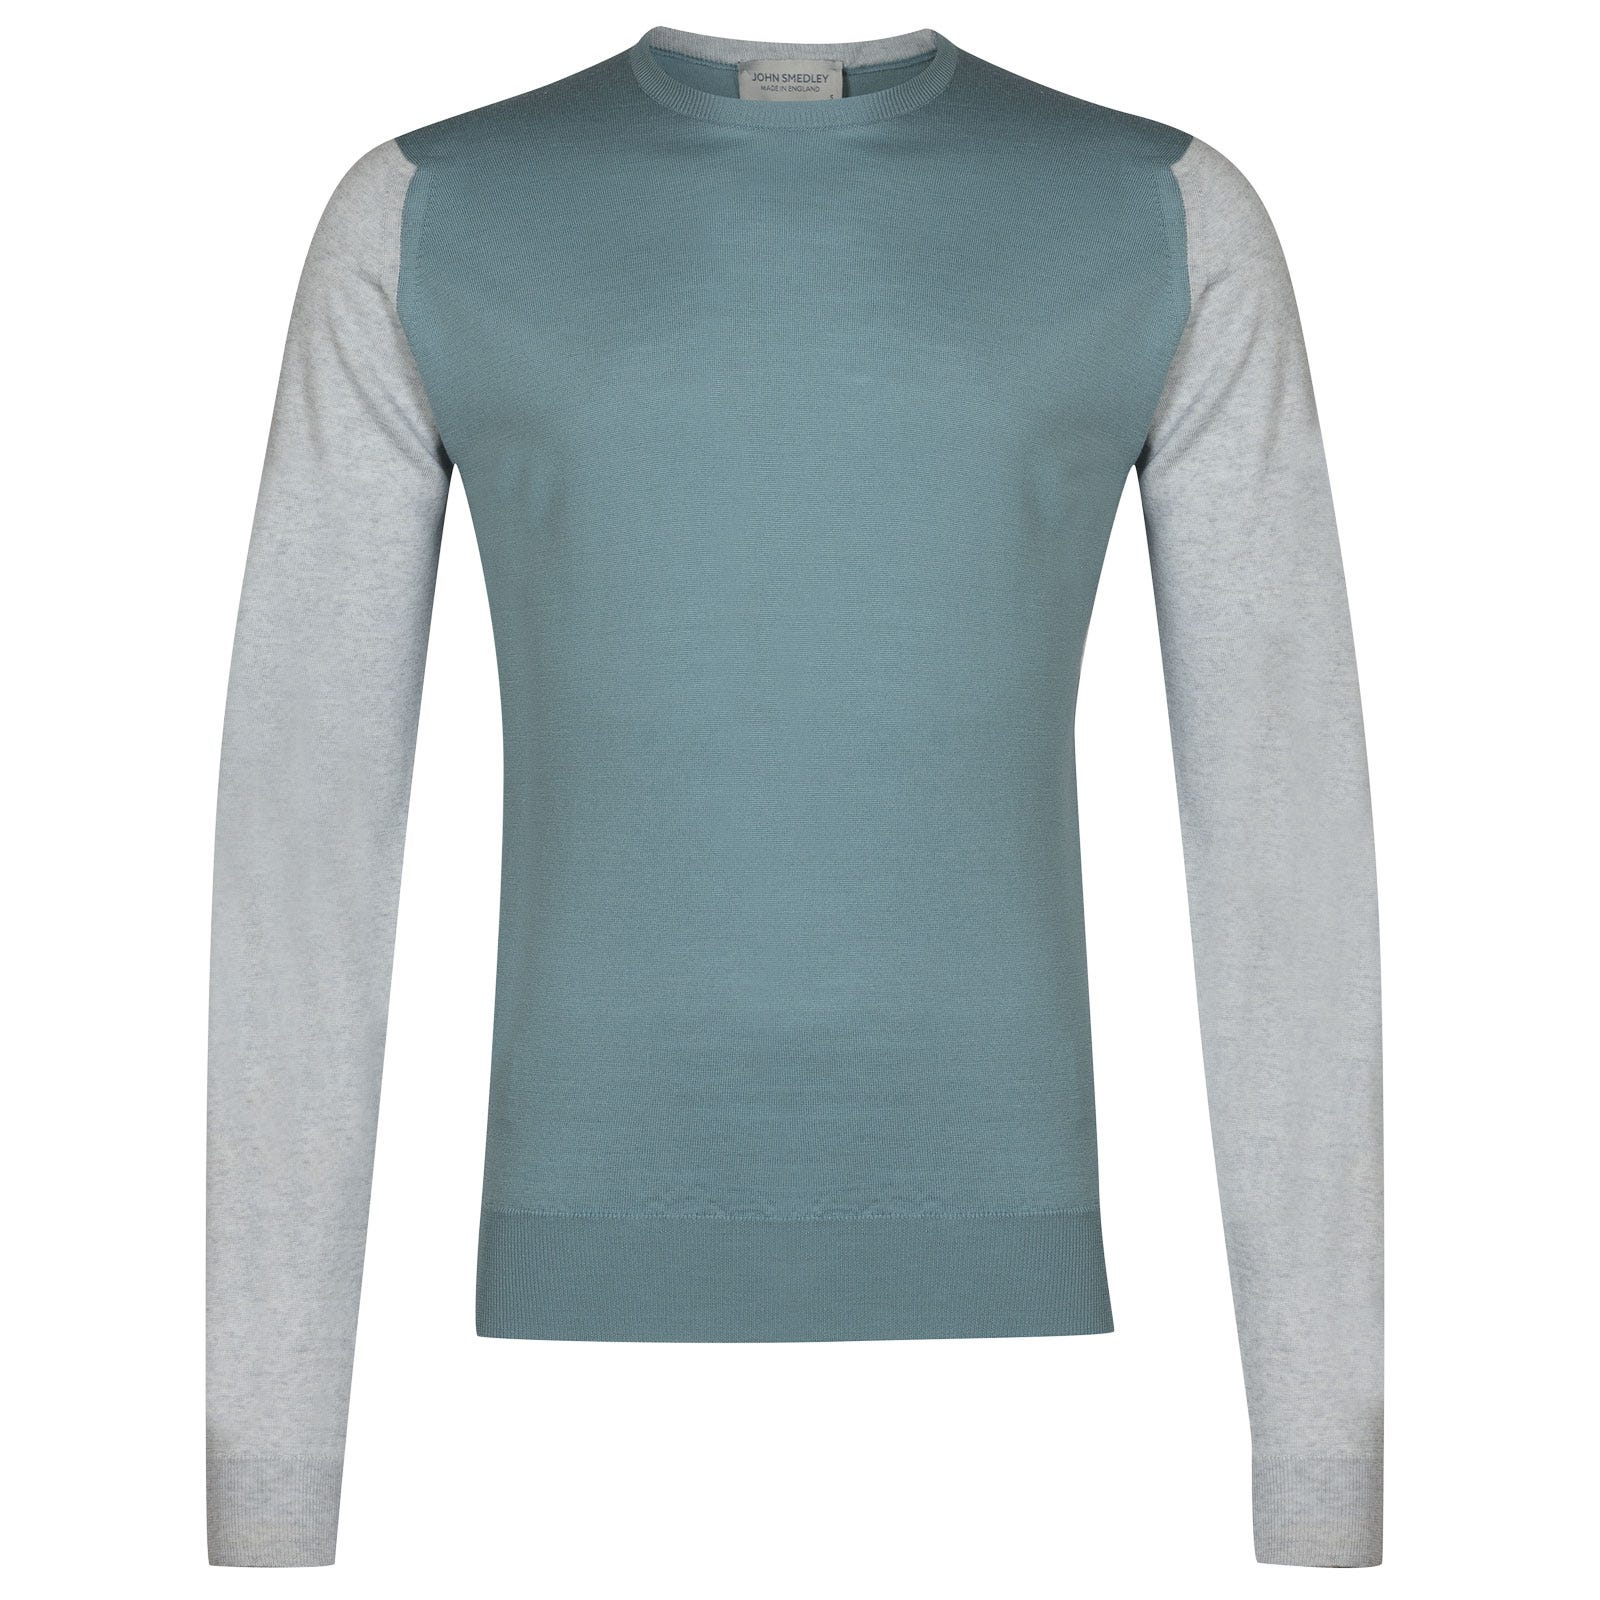 John Smedley hindlow Merino Wool Pullover in Bardot Grey/Summit Blue-S